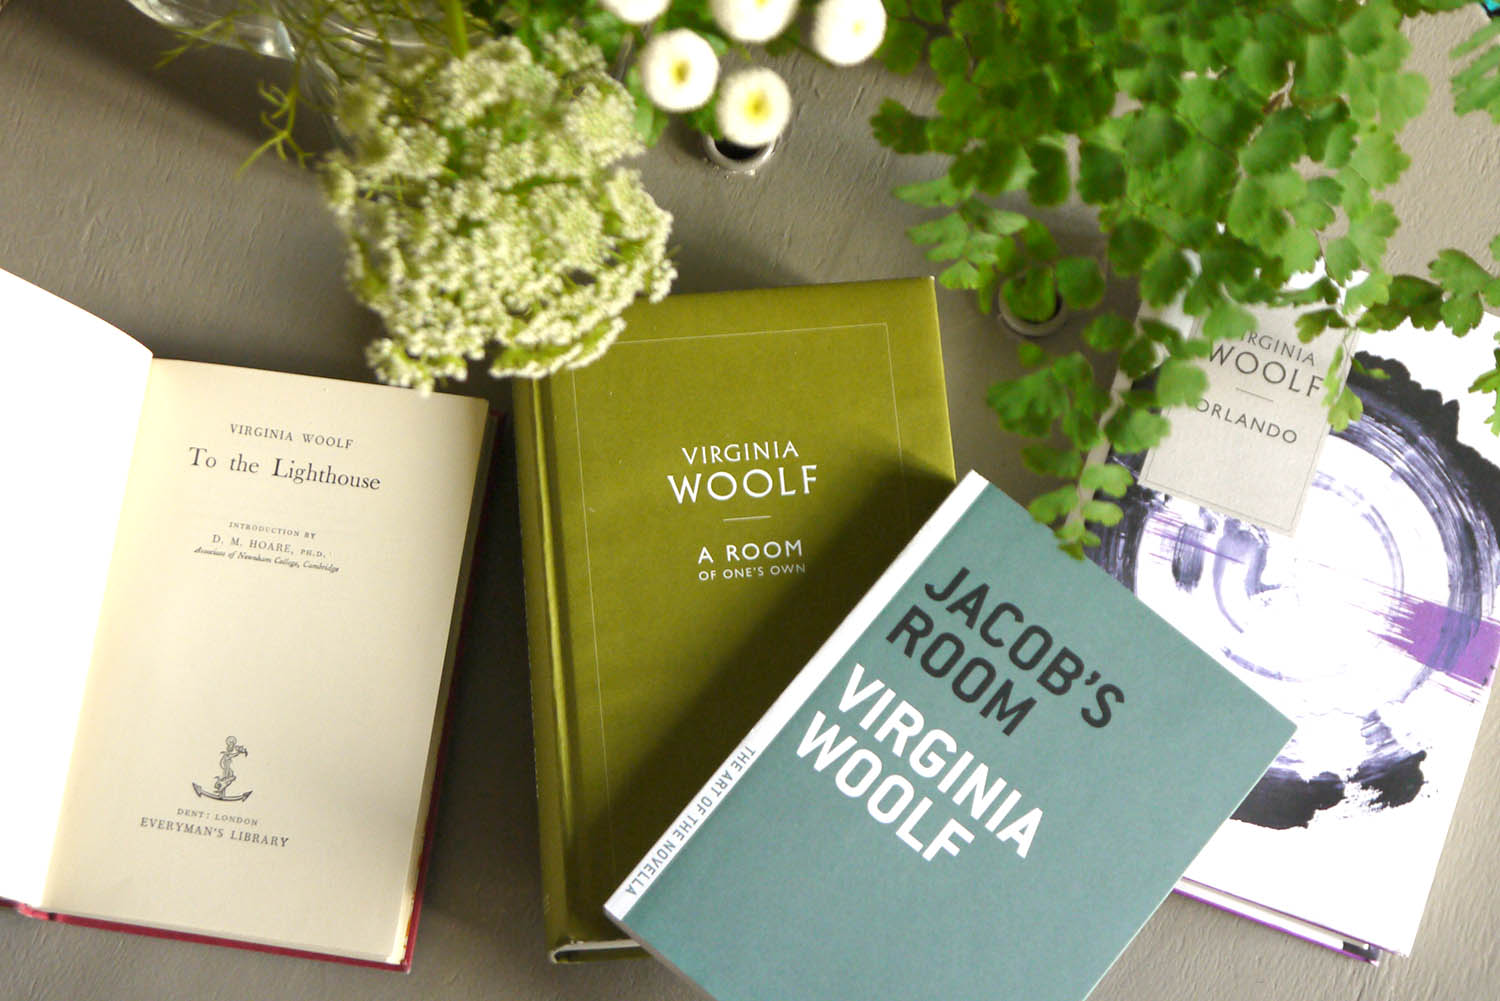 Virginia Woolf: noteworthy editions